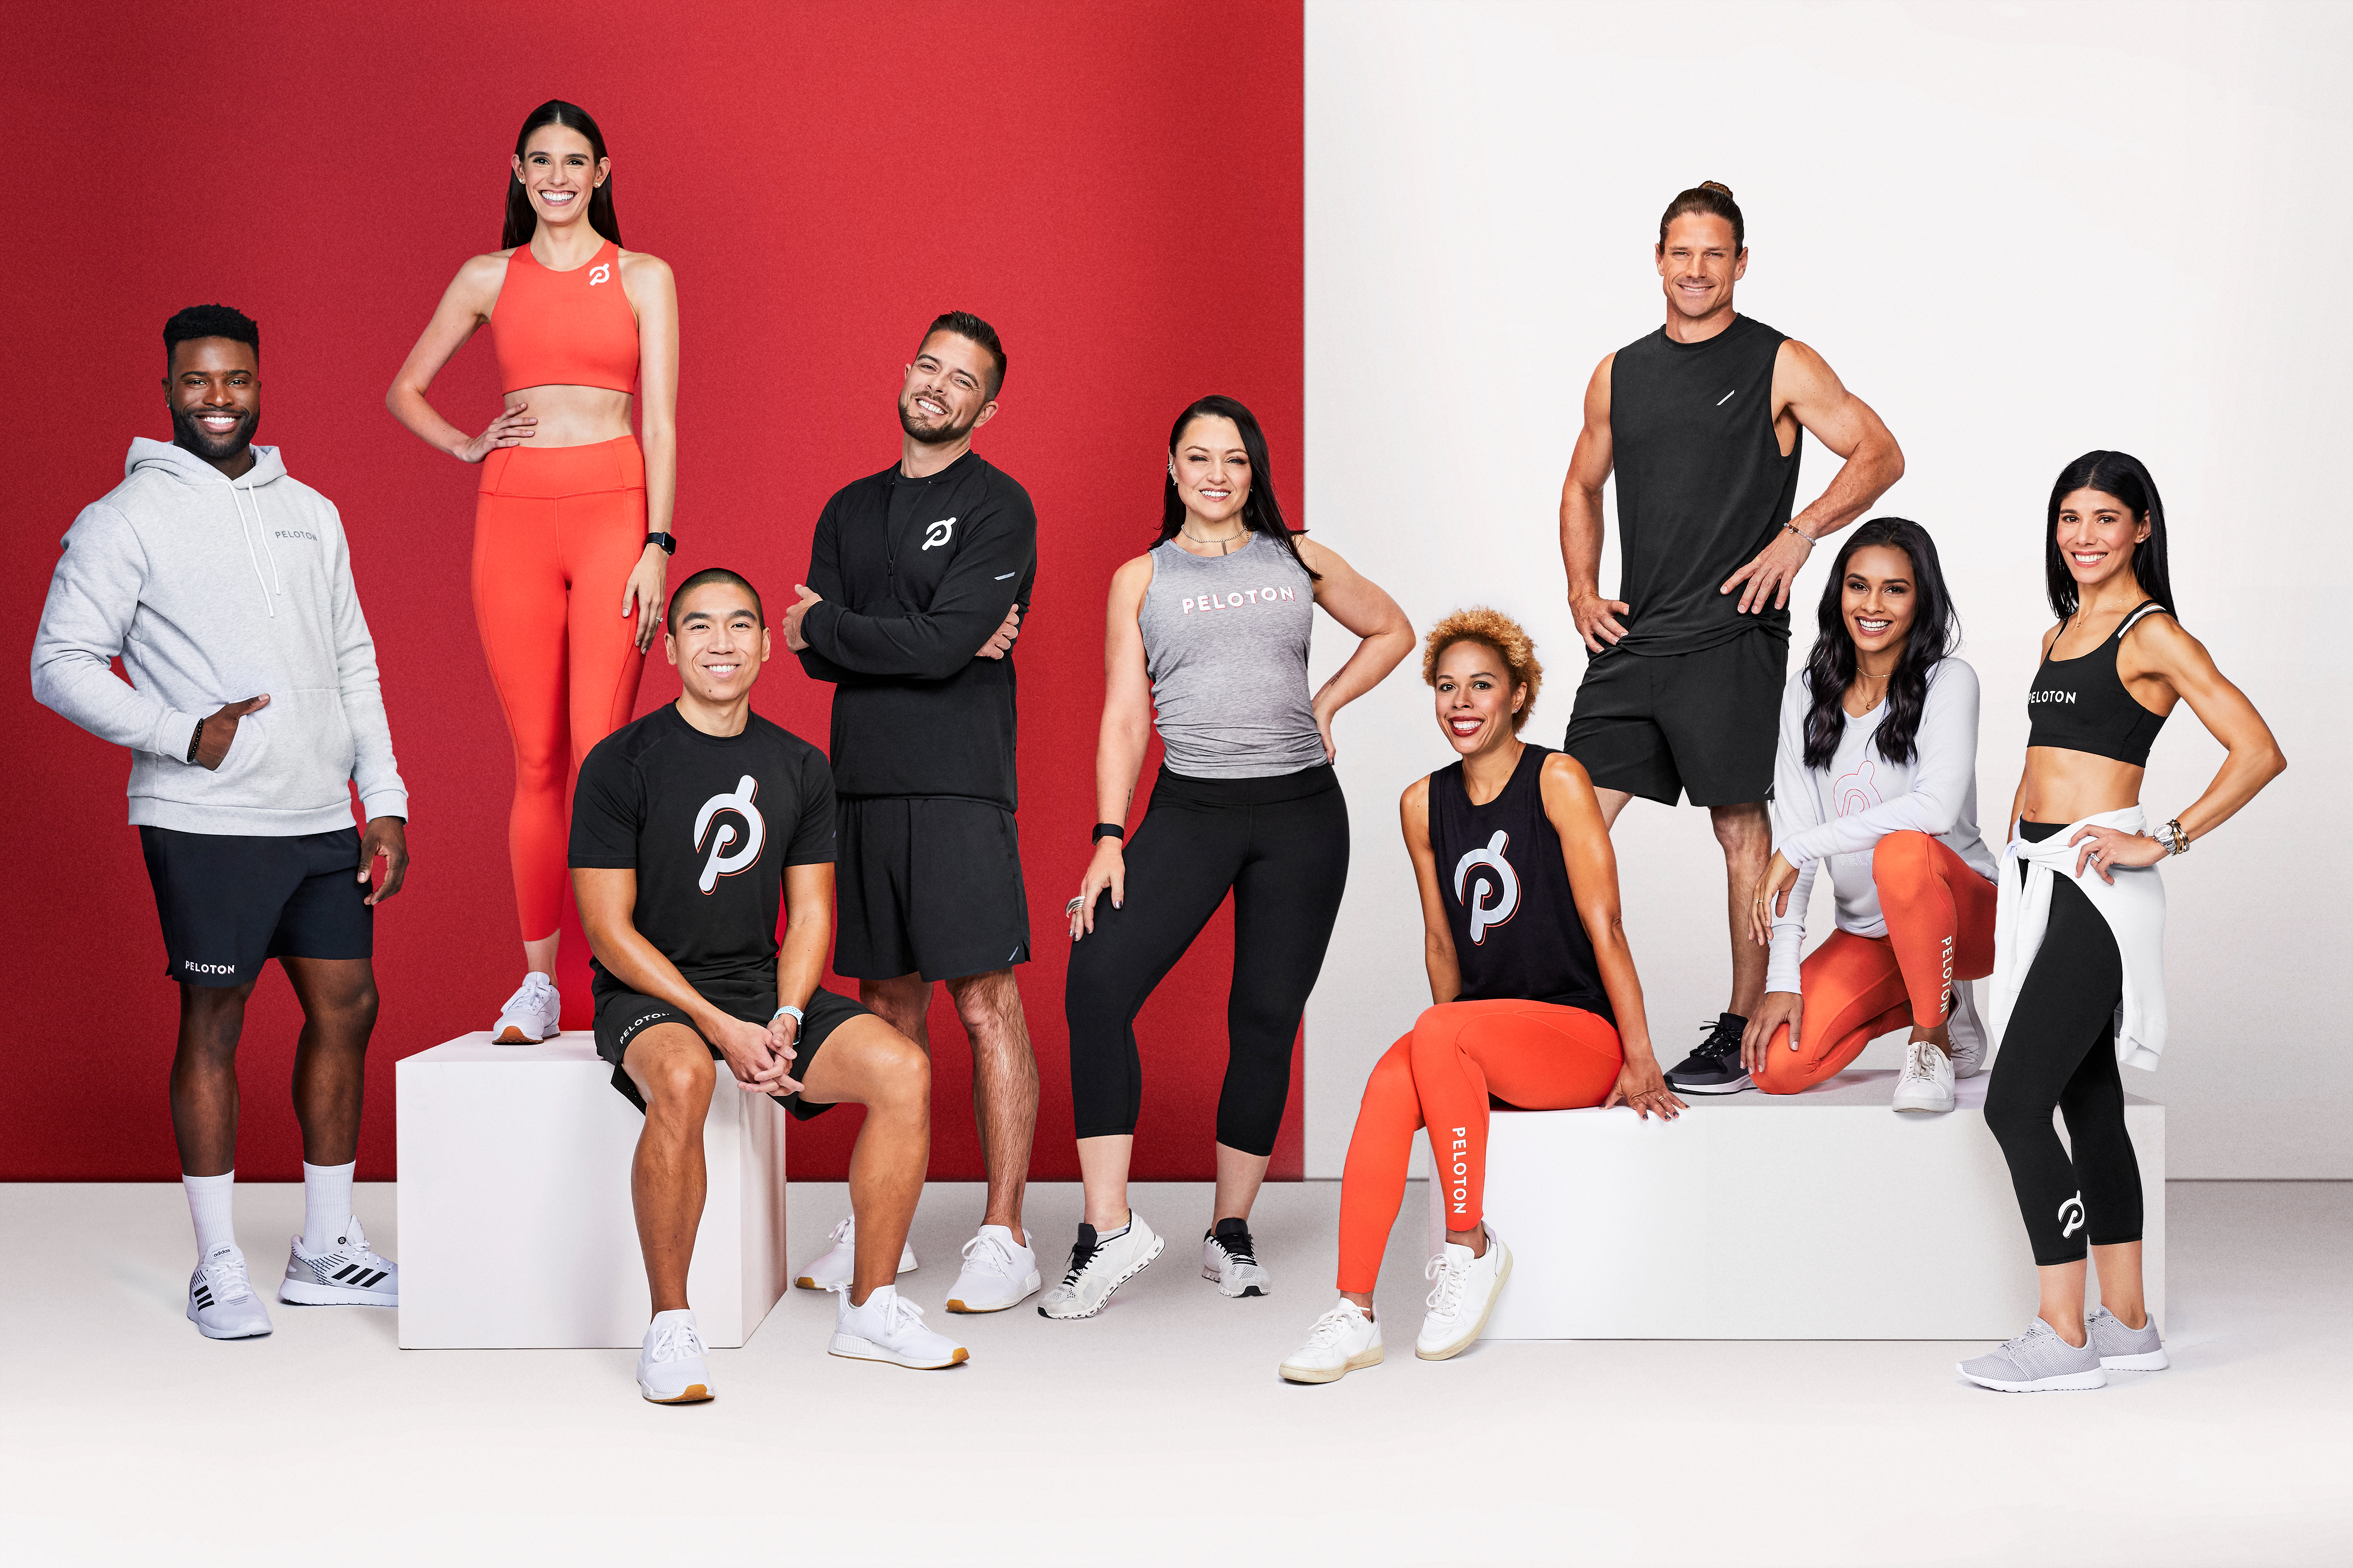 The marketing image for the Peloton x Athleta/Hill City collection.